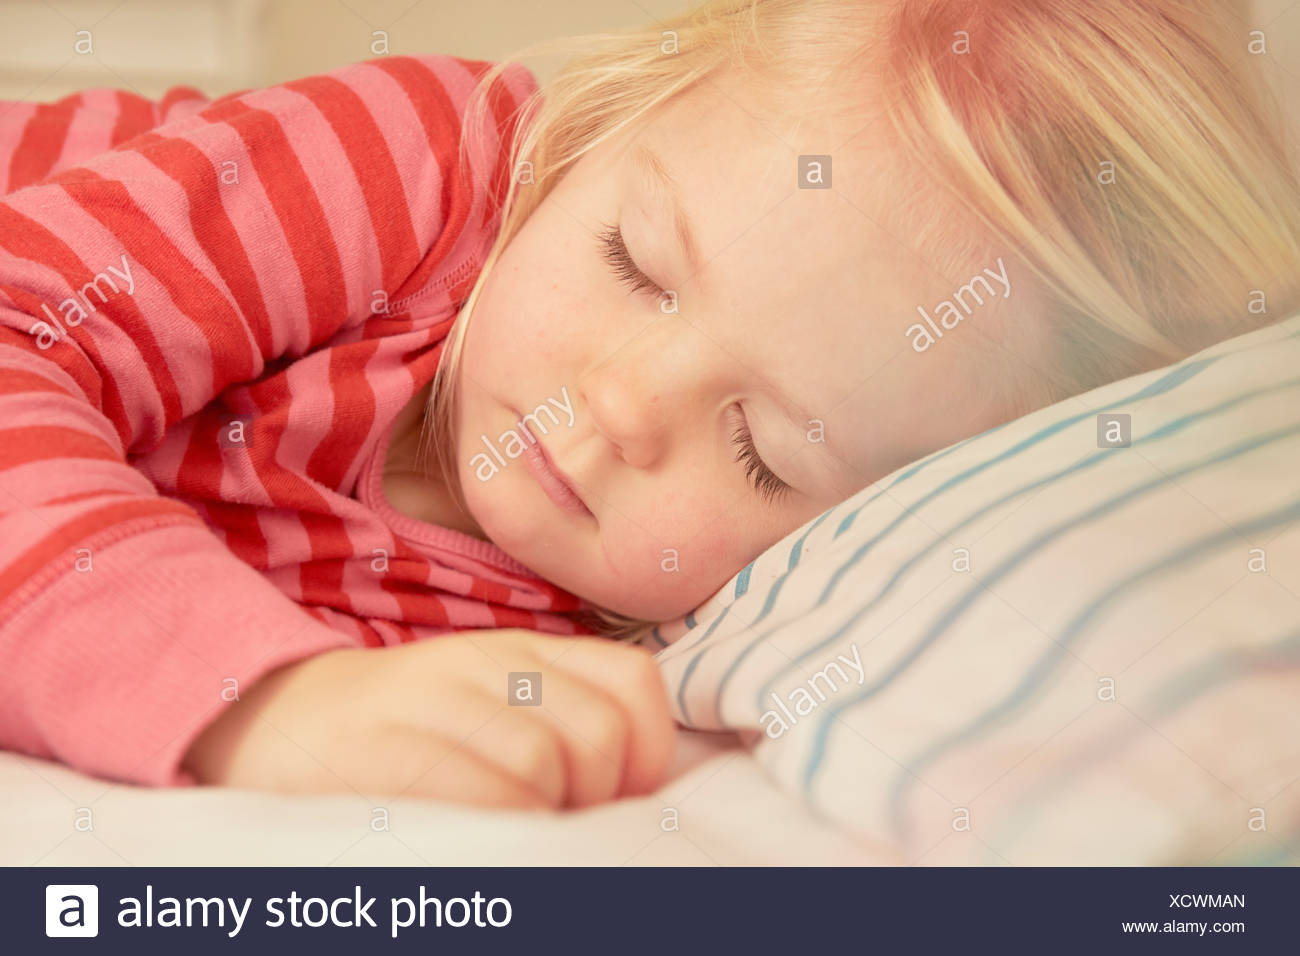 Young girl asleep in bed - Stock Image